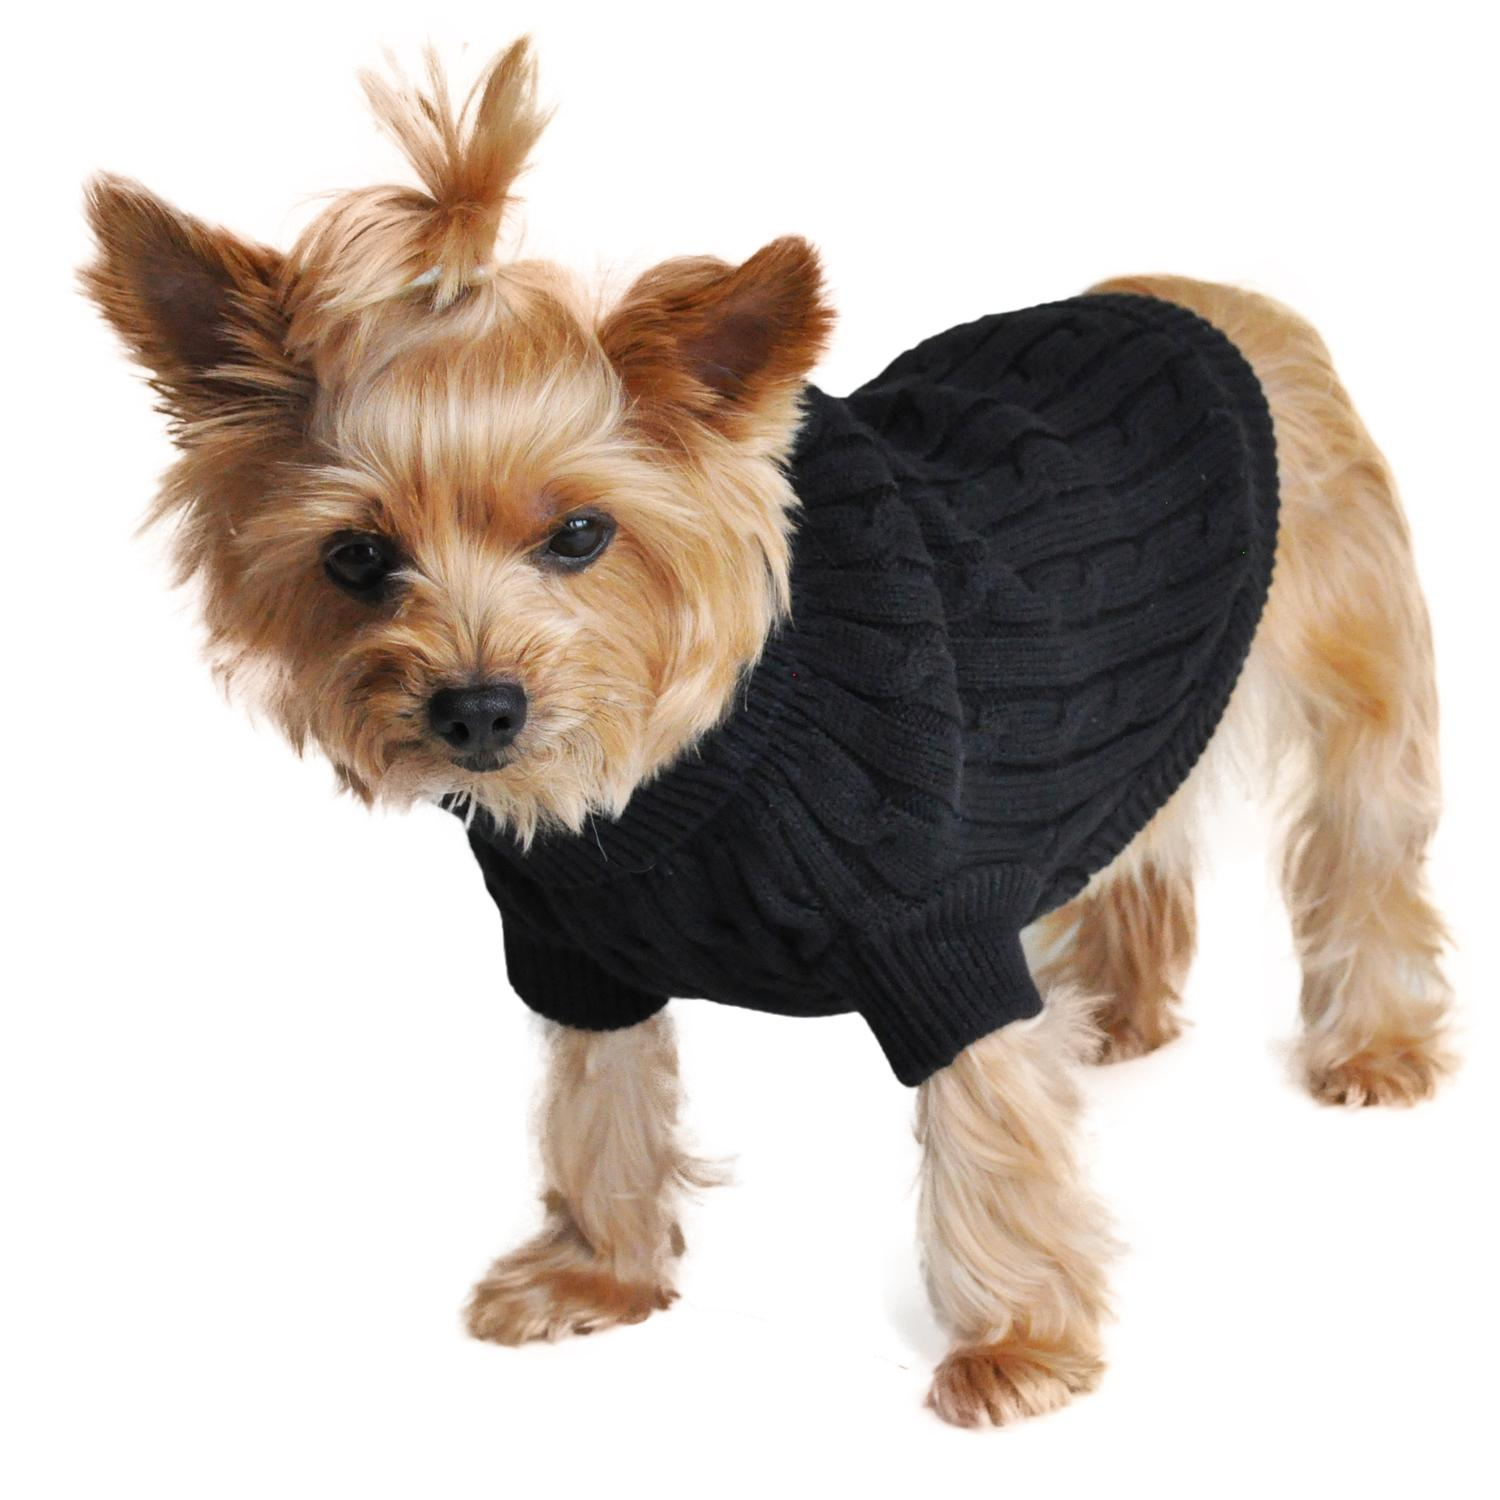 Cable Knit Dog Sweater by Doggie Design - Jet Black